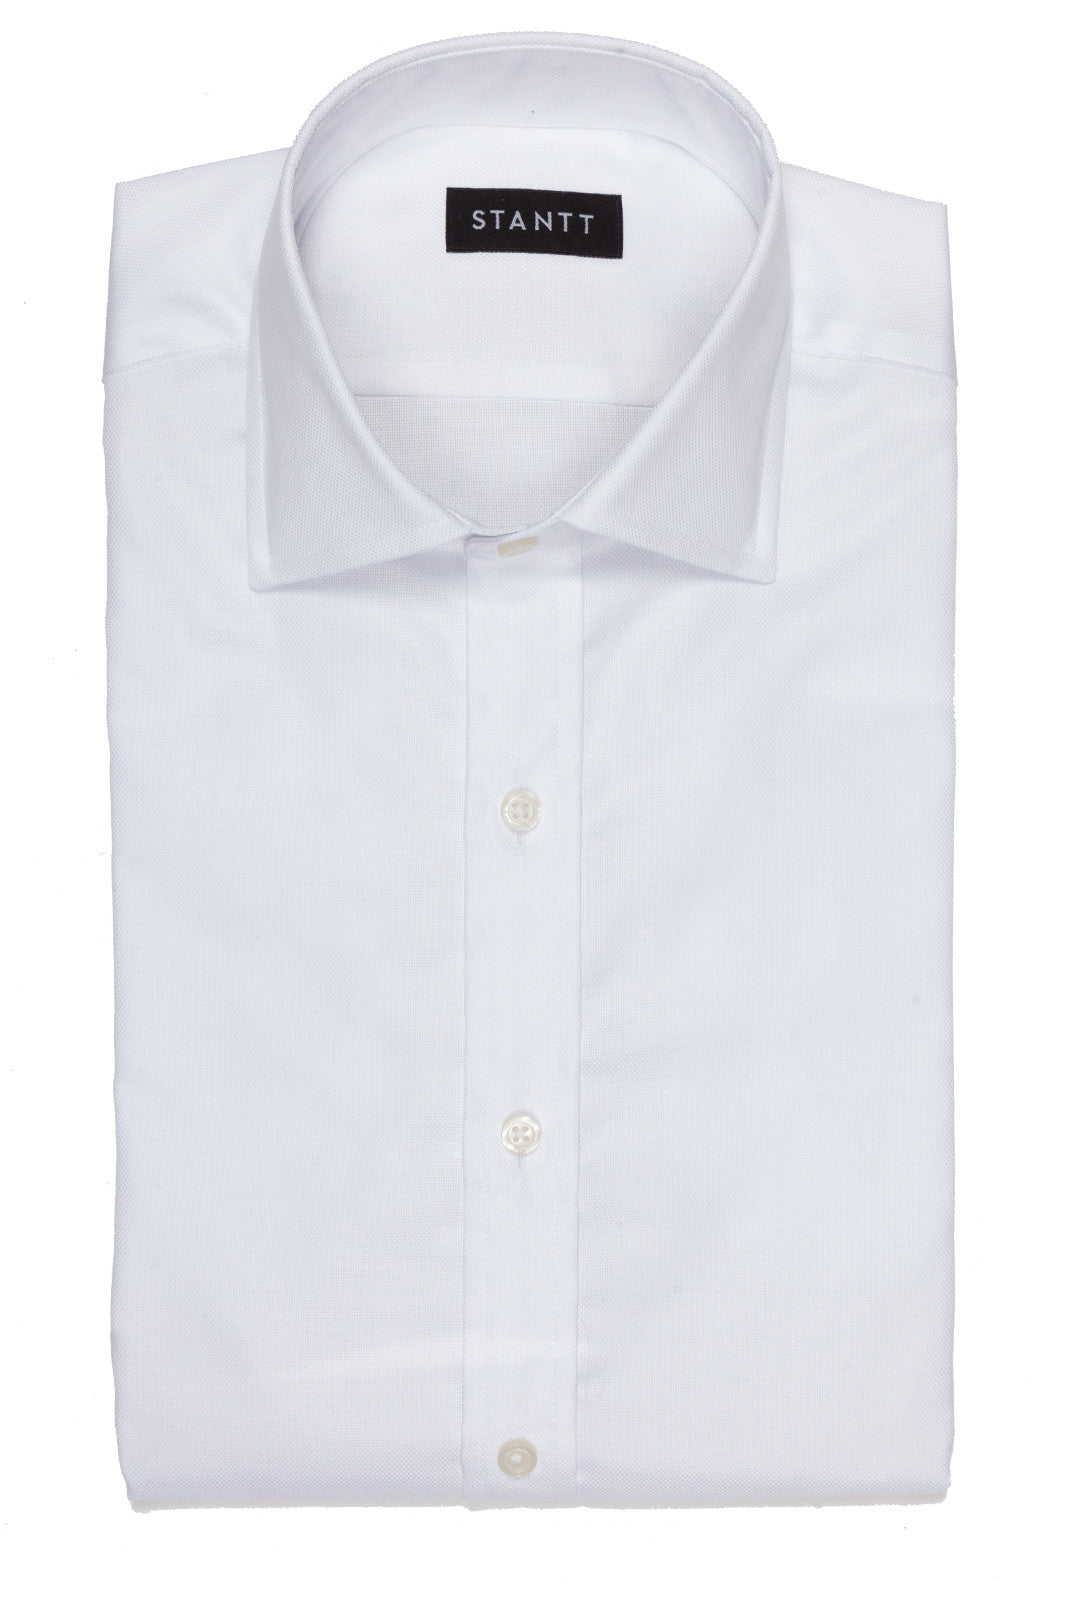 White Royal Oxford: Modified-Spread Collar, French Cuff